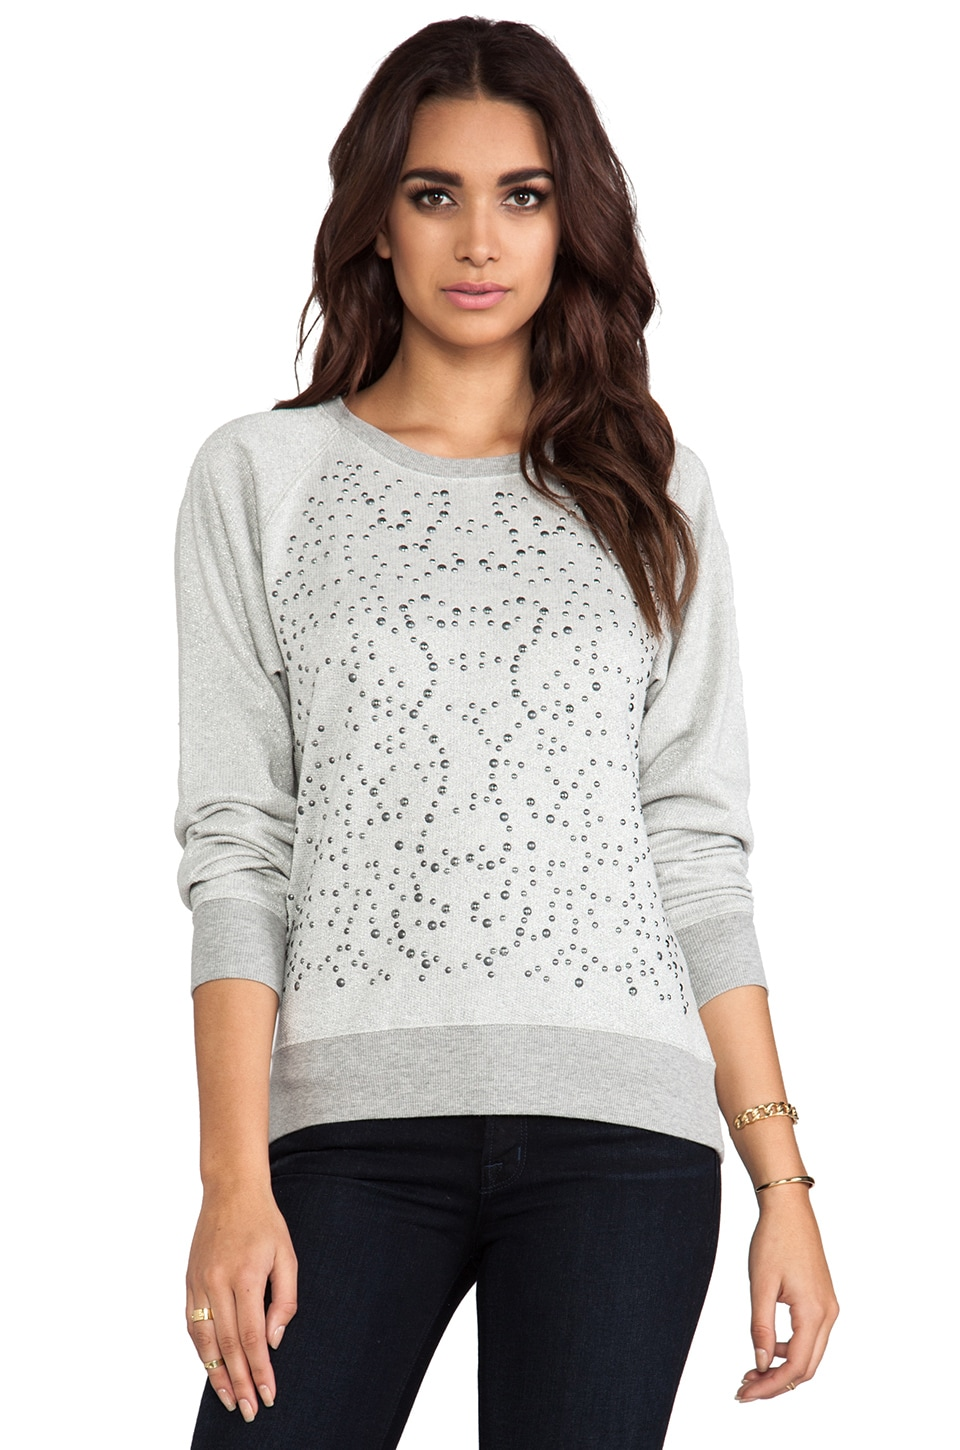 C&C California Lurex French Terry Long Sleeve Embellished Sweatshirt in Heather Grey